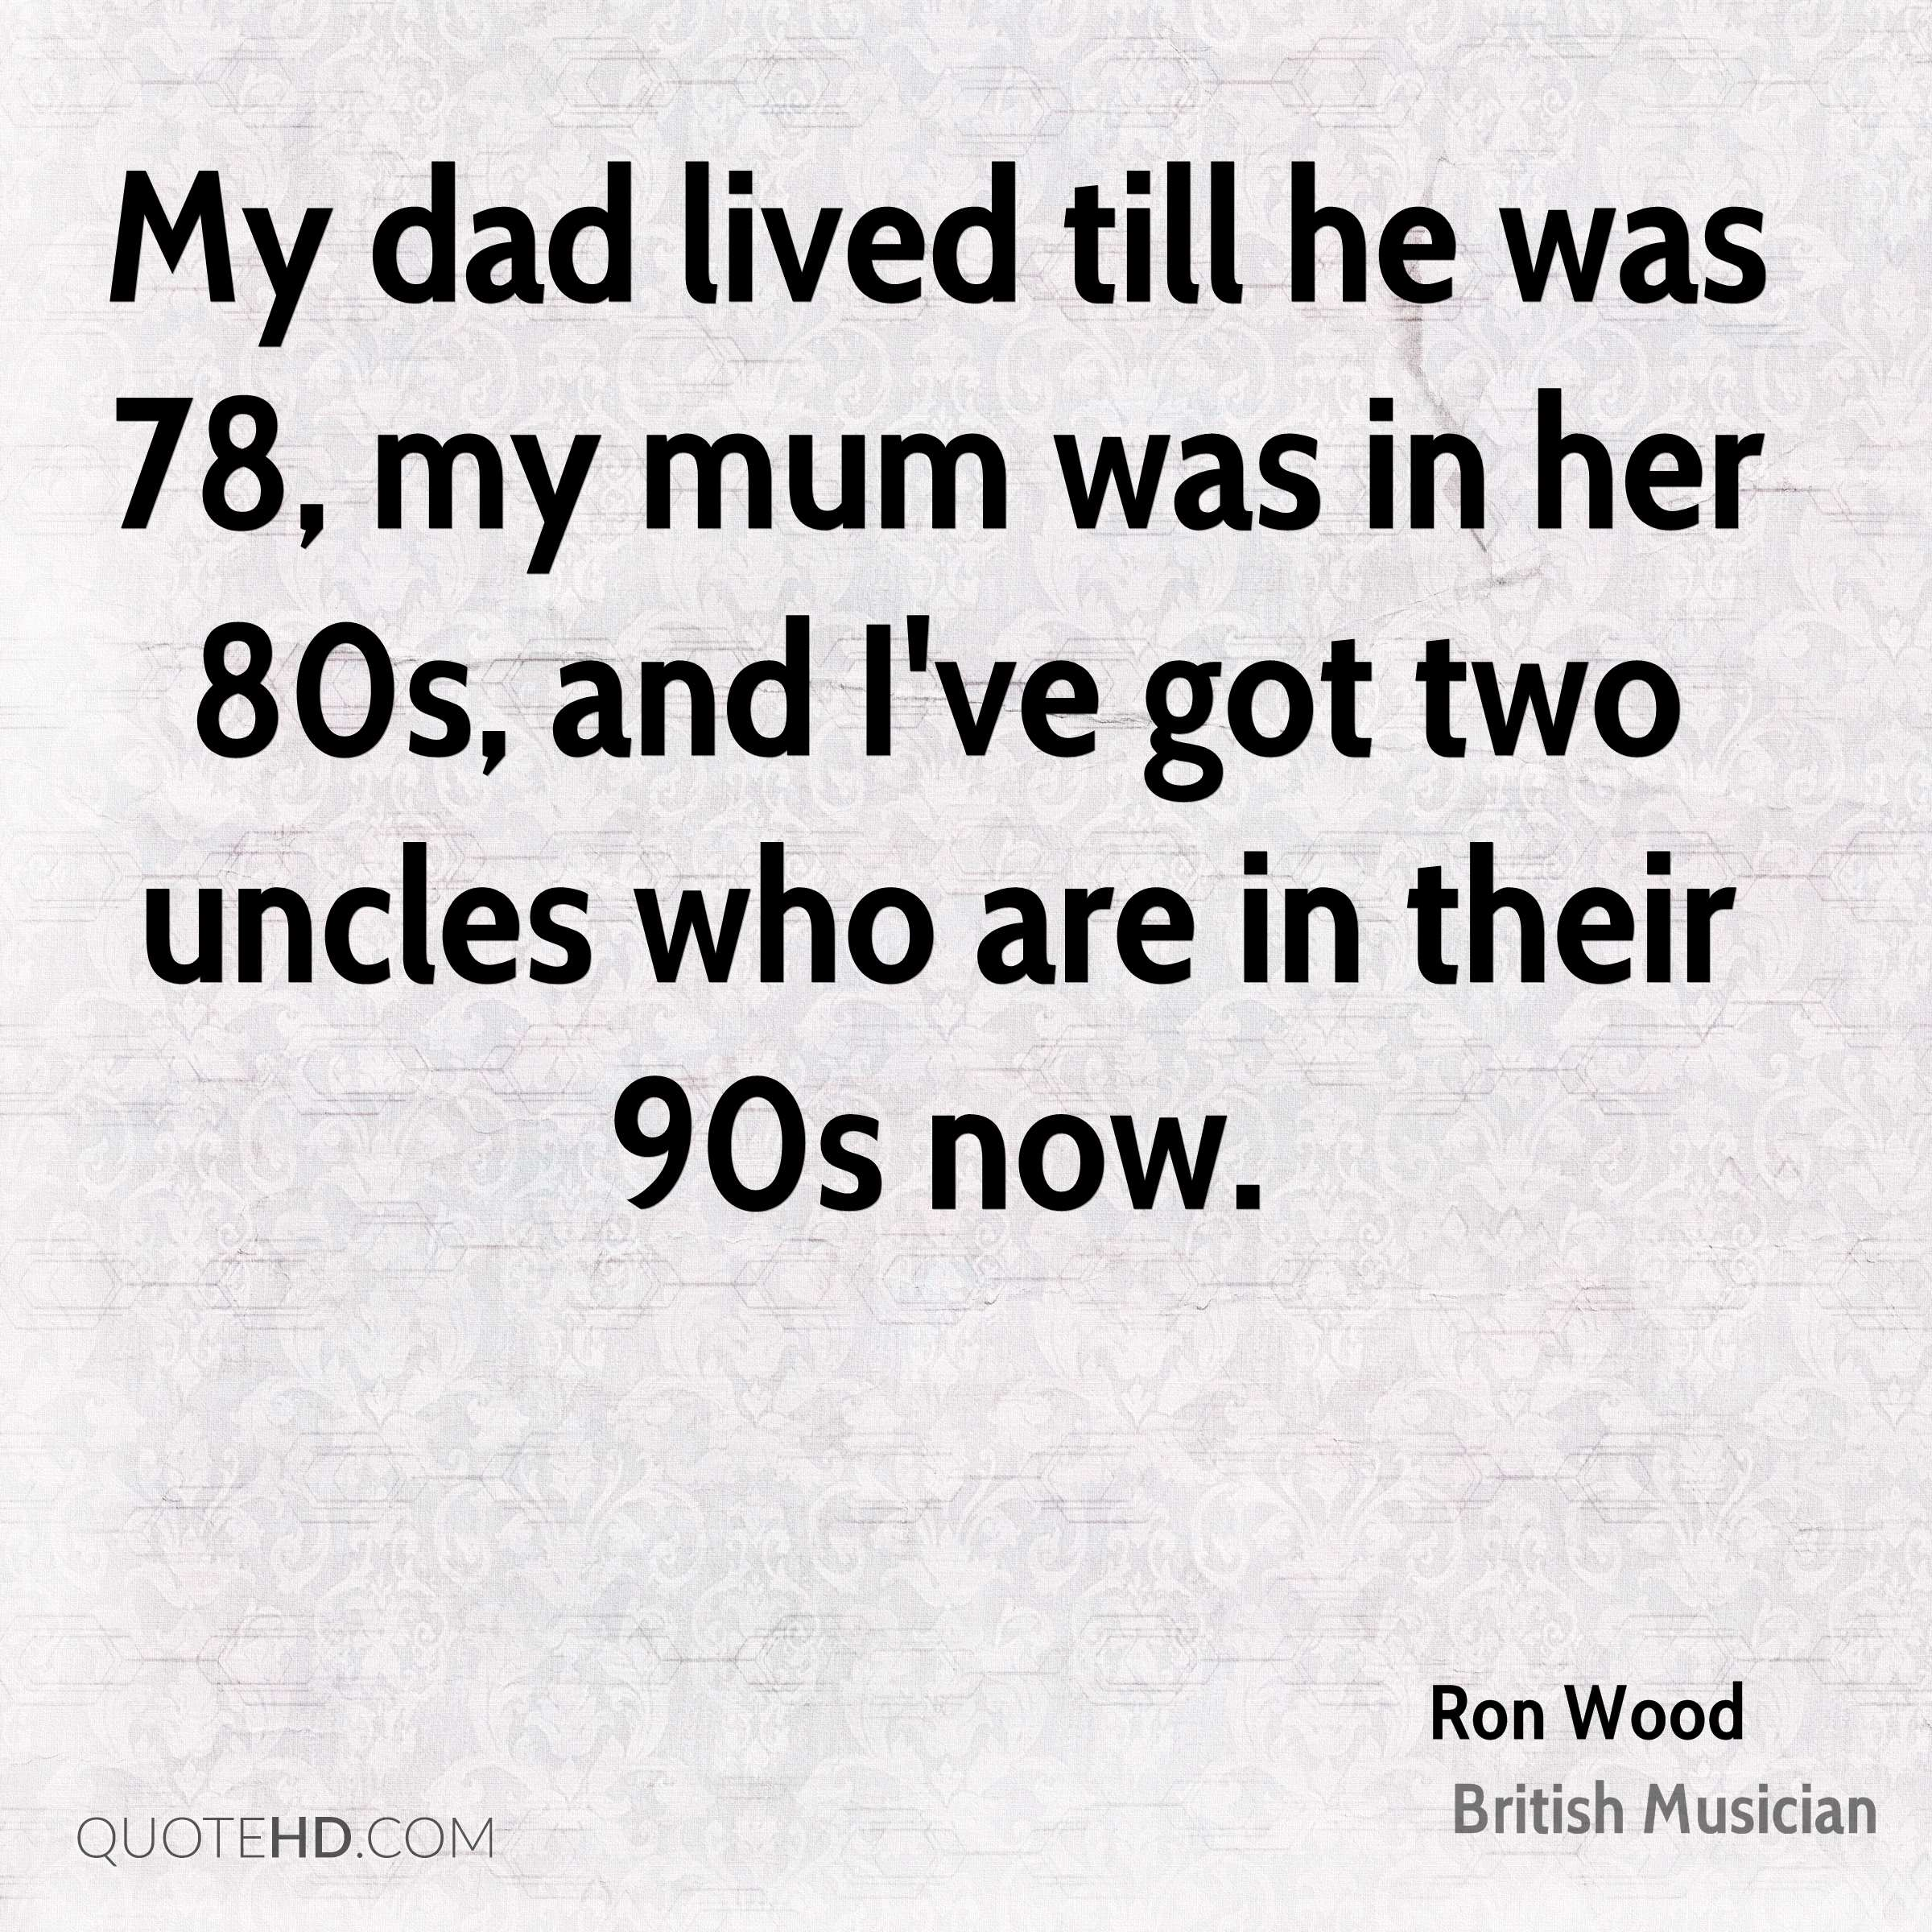 My dad lived till he was 78, my mum was in her 80s, and I've got two uncles who are in their 90s now.